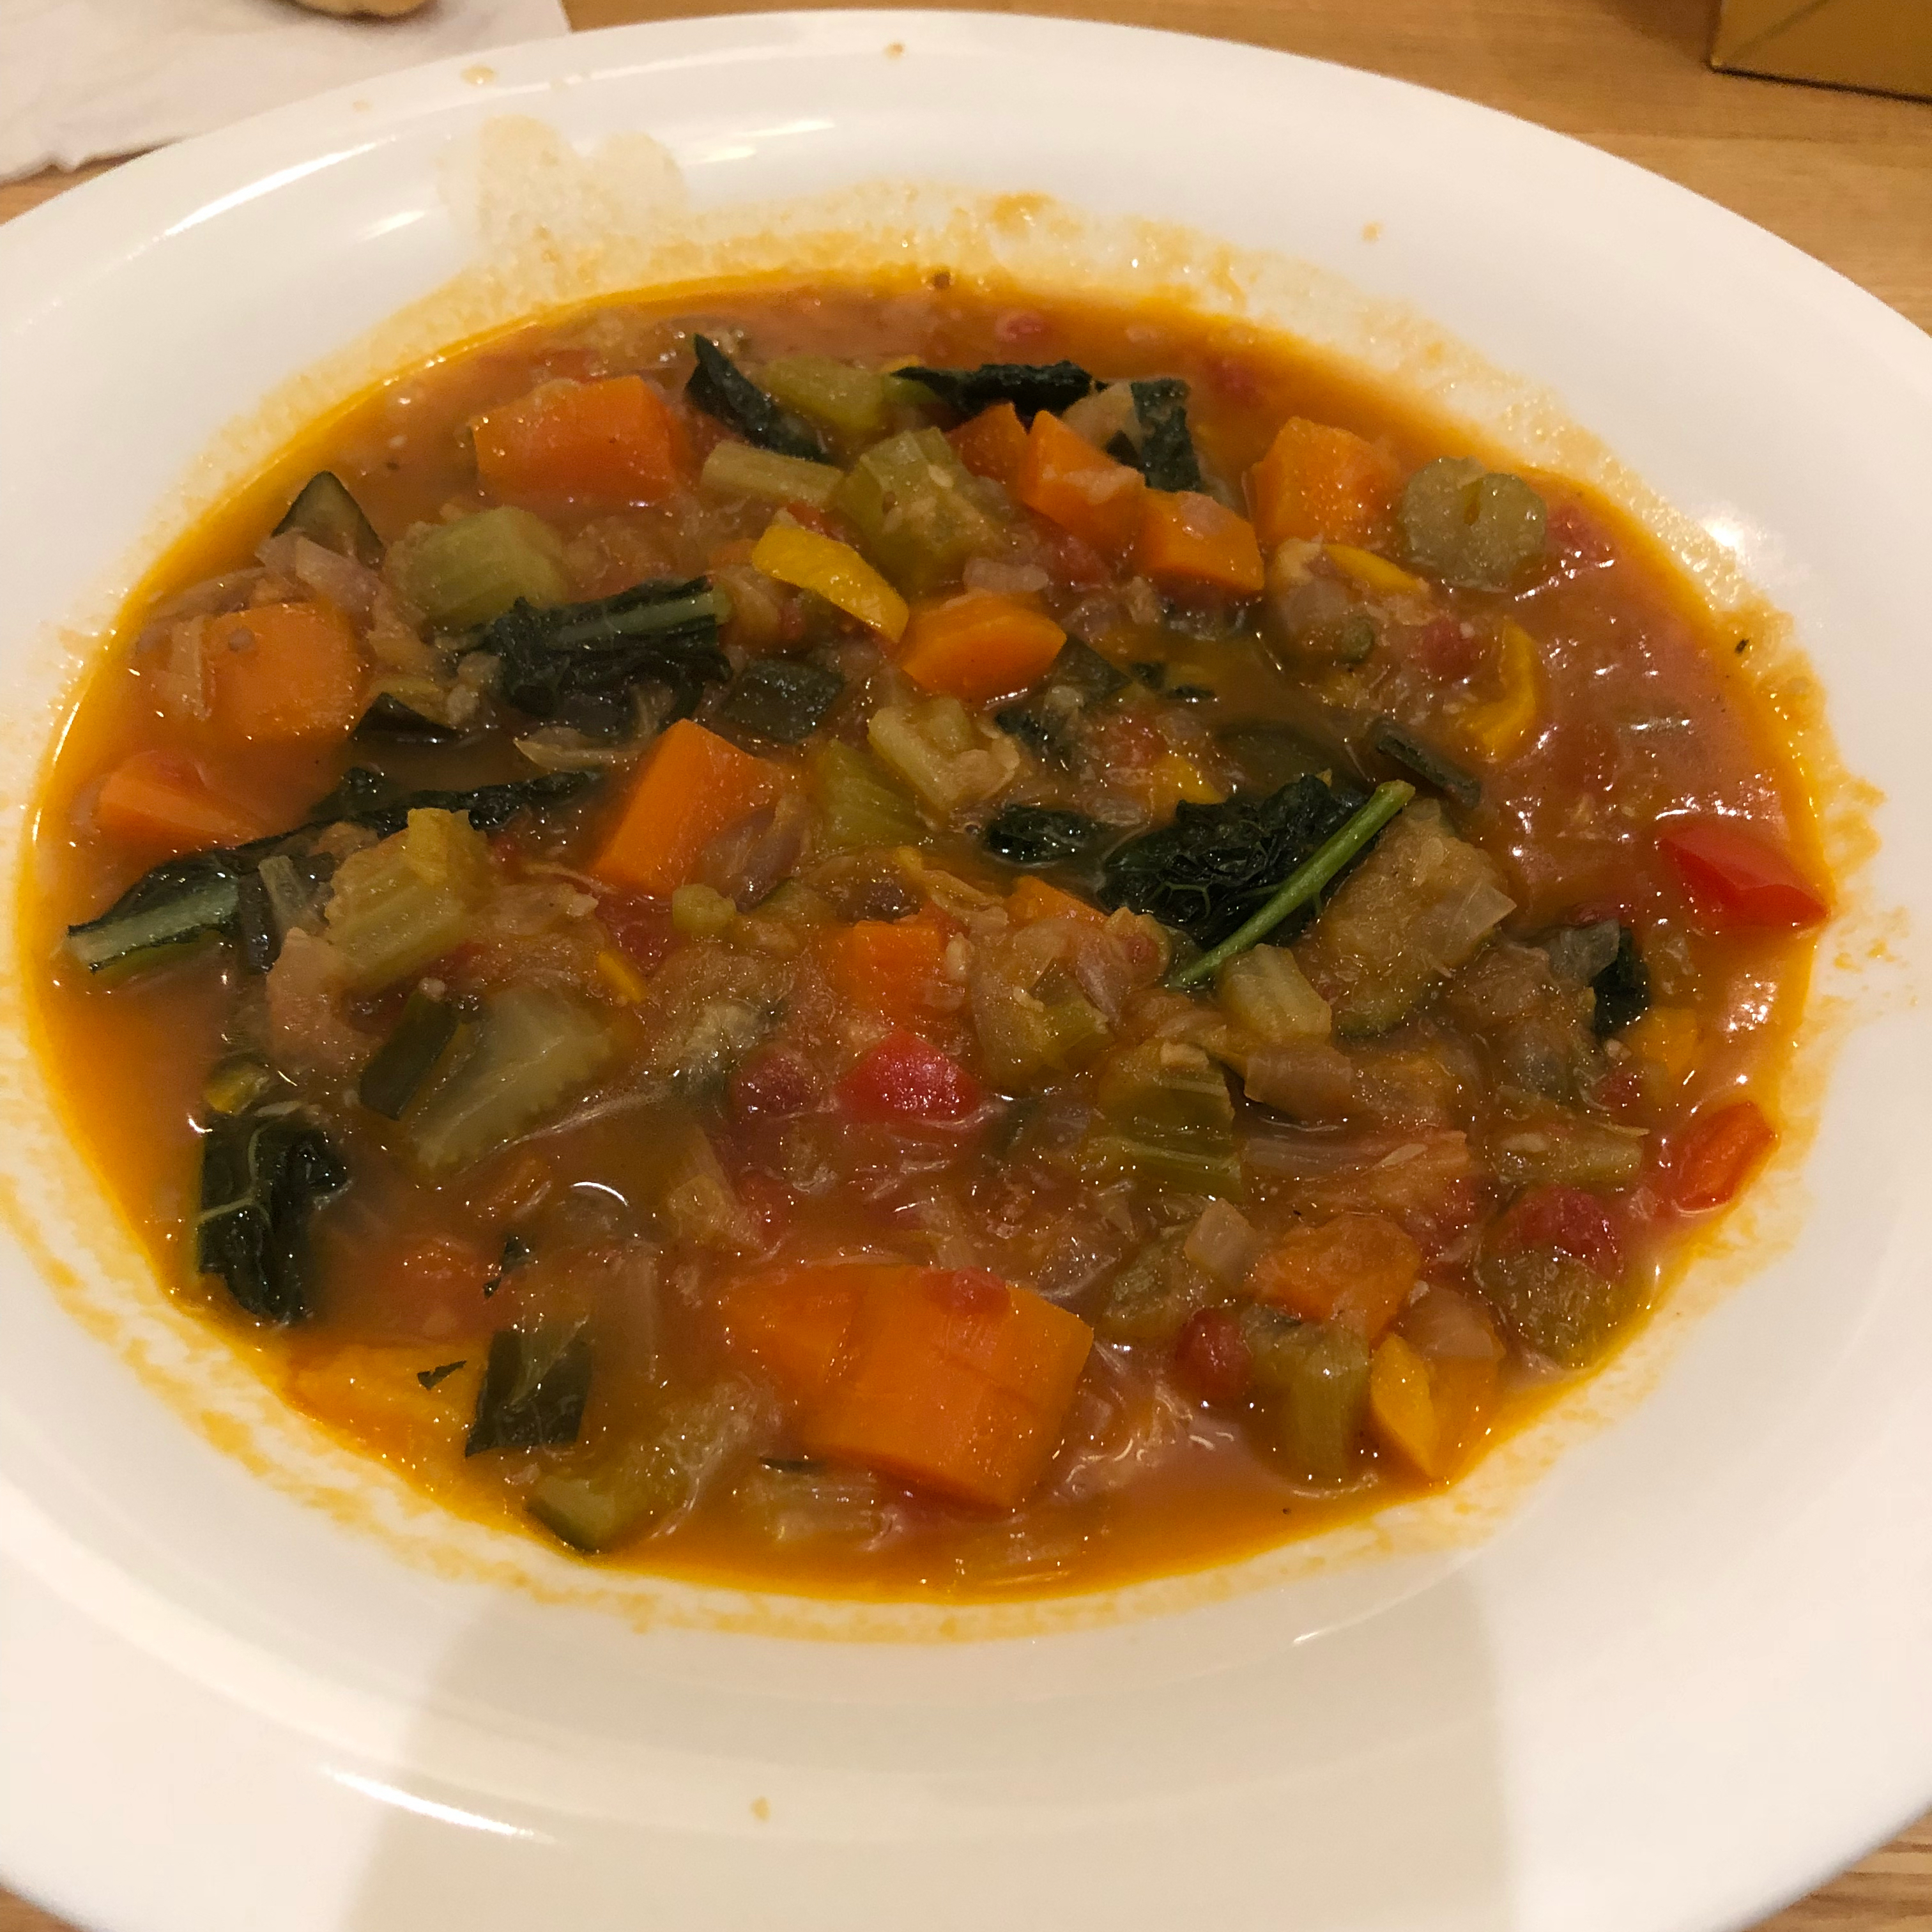 Judy's Hearty Vegetable Minestrone Soup chilimama